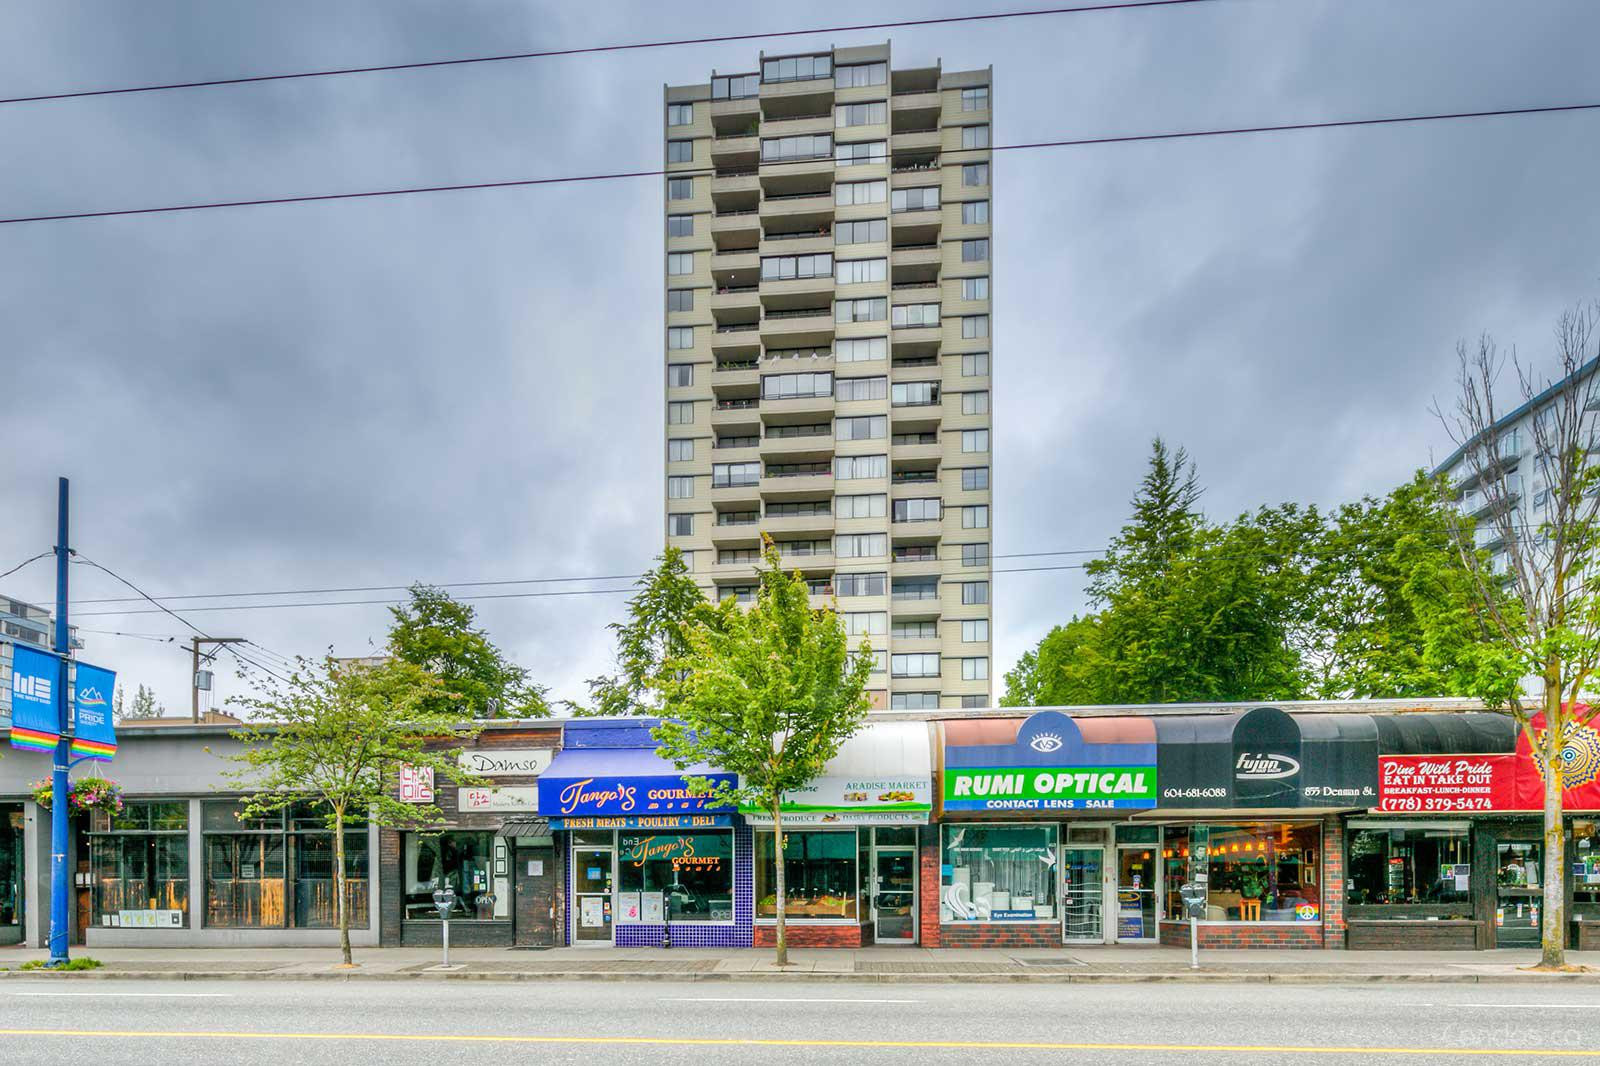 Huntington Place at 1816 Haro St, Vancouver 1